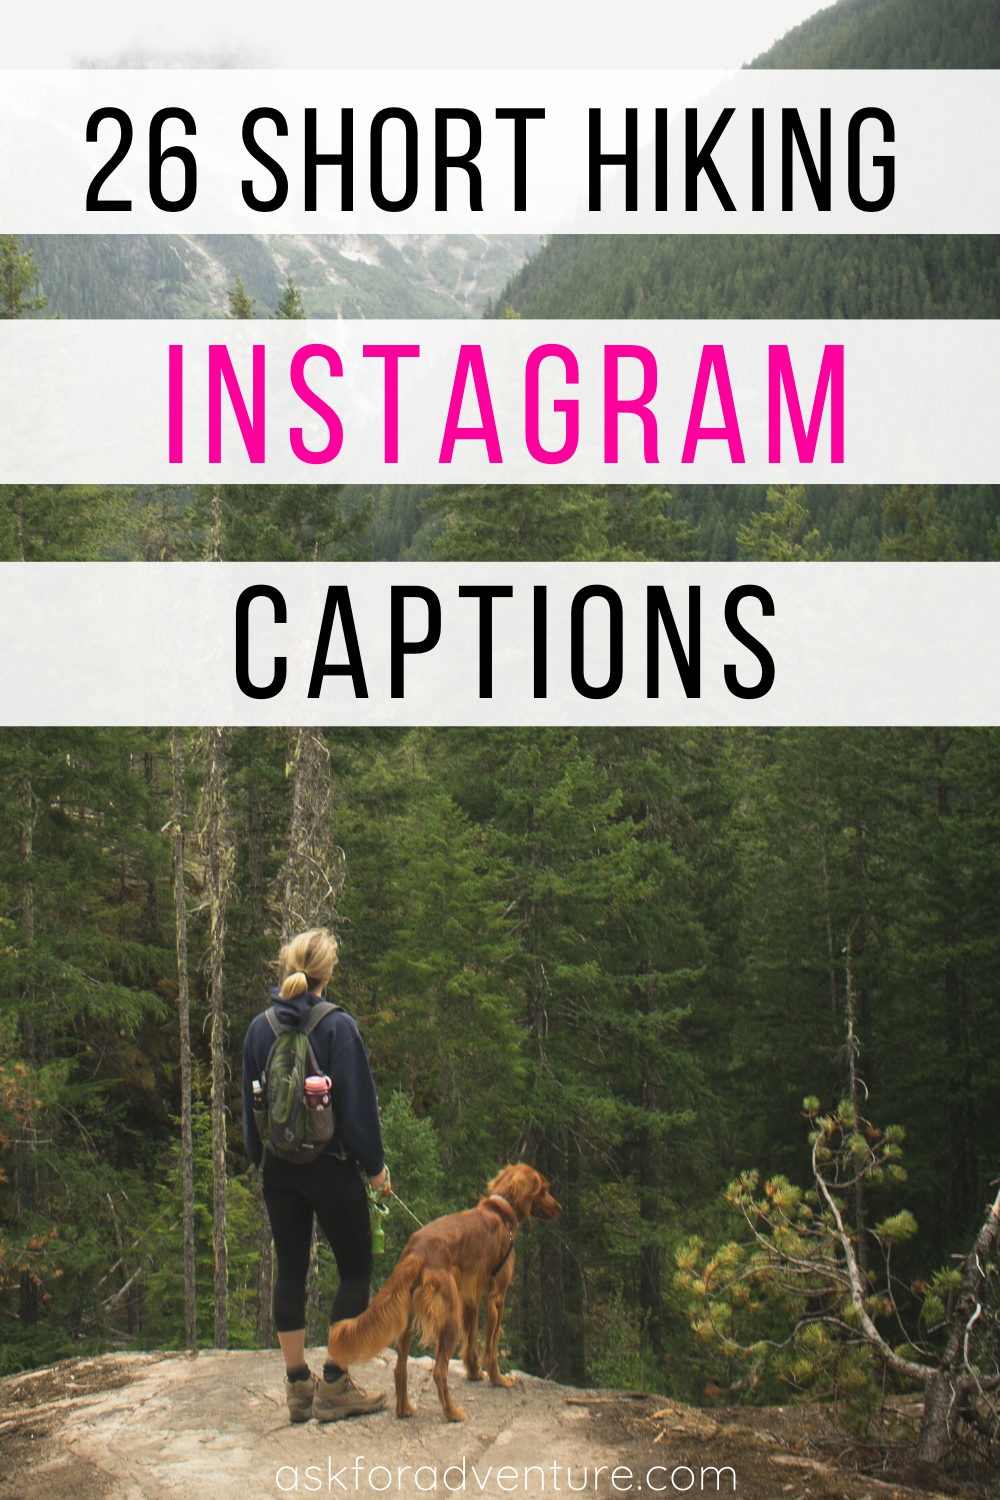 26 Good Instagram Captions For Hiking Pictures Ask For Adventure Good Instagram Captions Hiking Pictures Instagram Captions